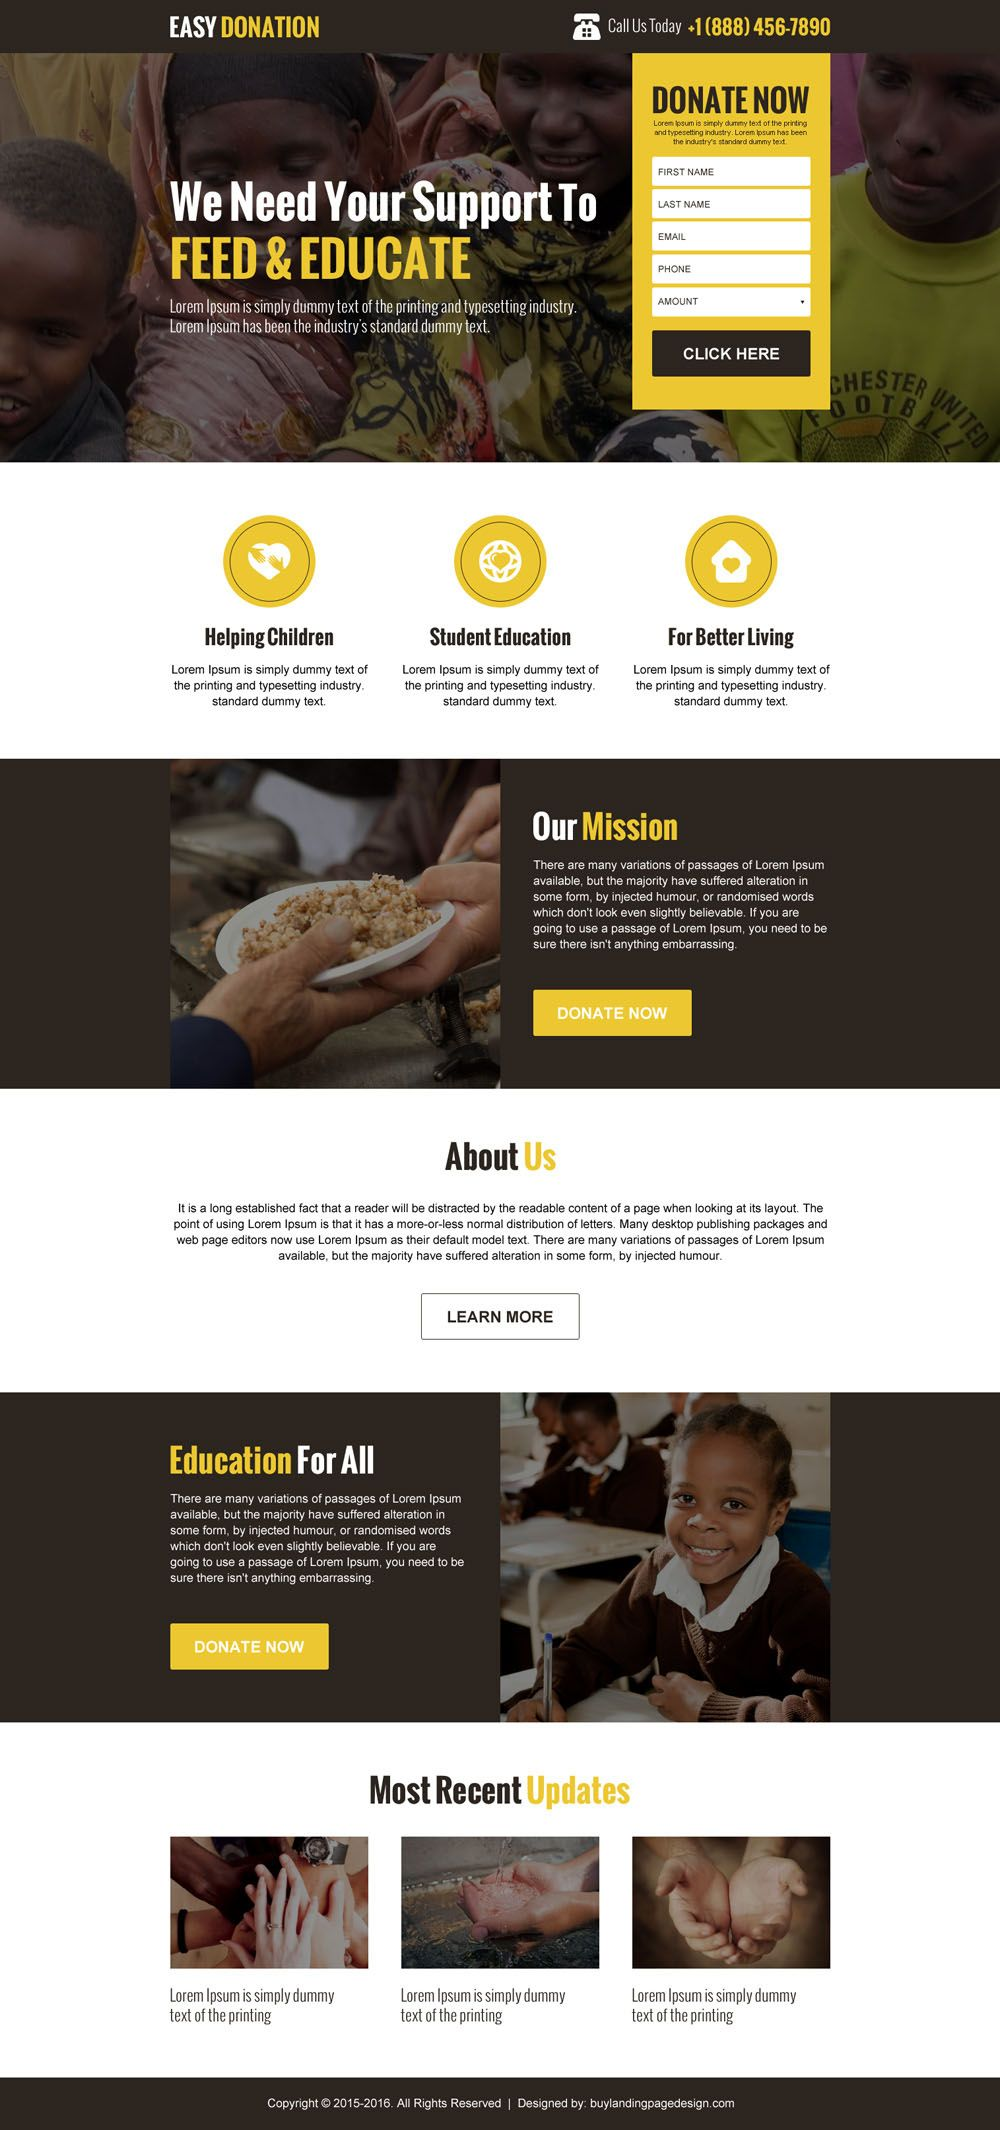 pin by itrust price on promotion pinterest landing page design